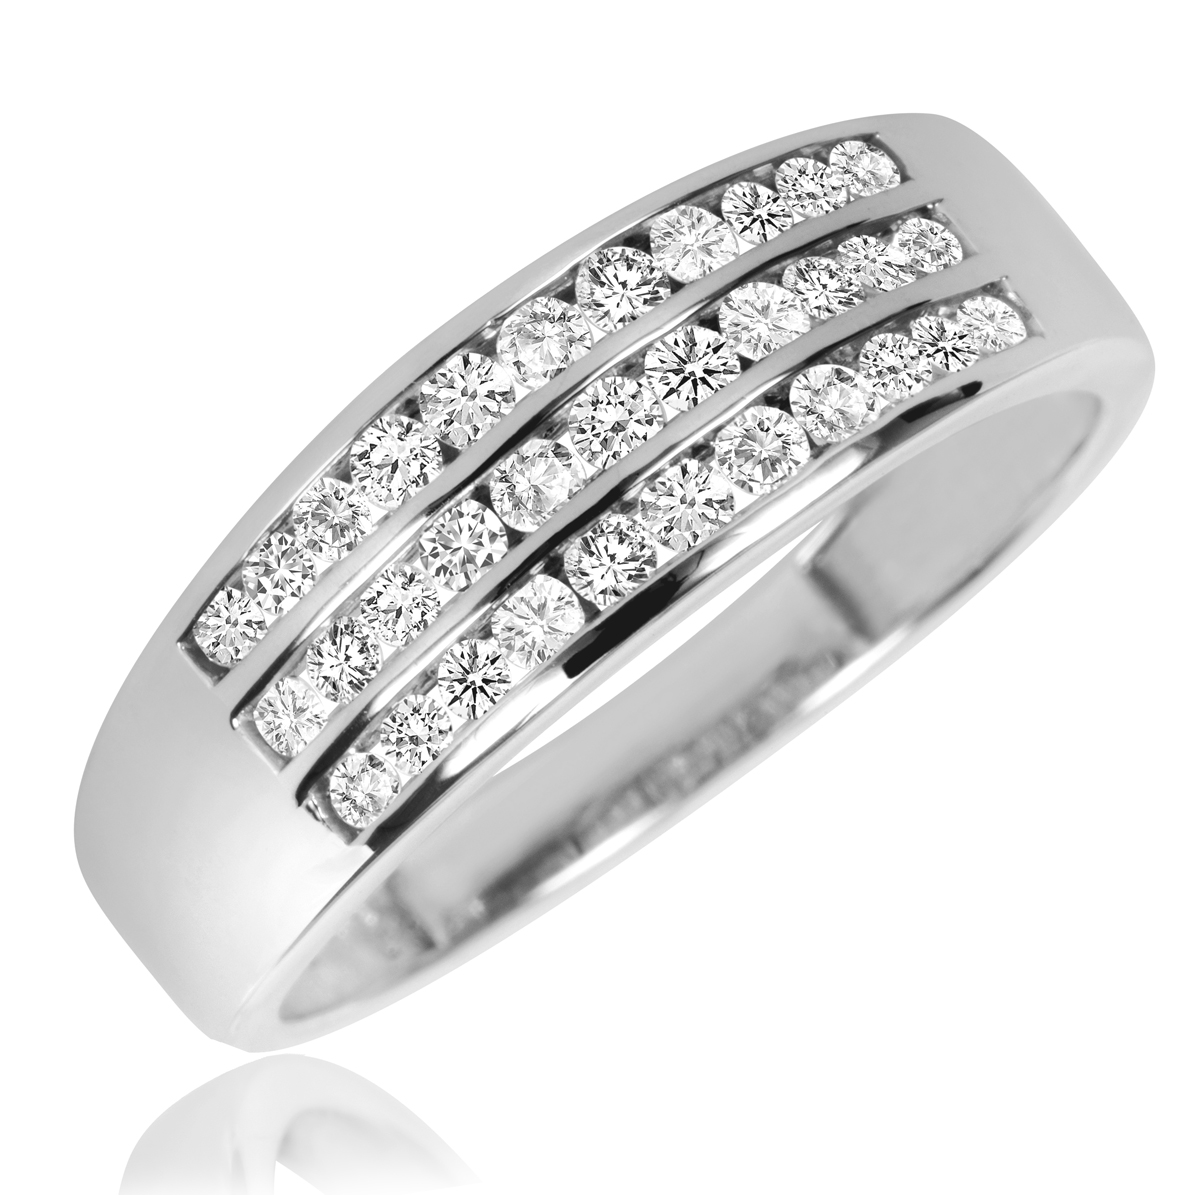 white wedding band Thin wedding band solid 14k WHITE gold handmade ring stackable full round 1 3 mm classic smooth